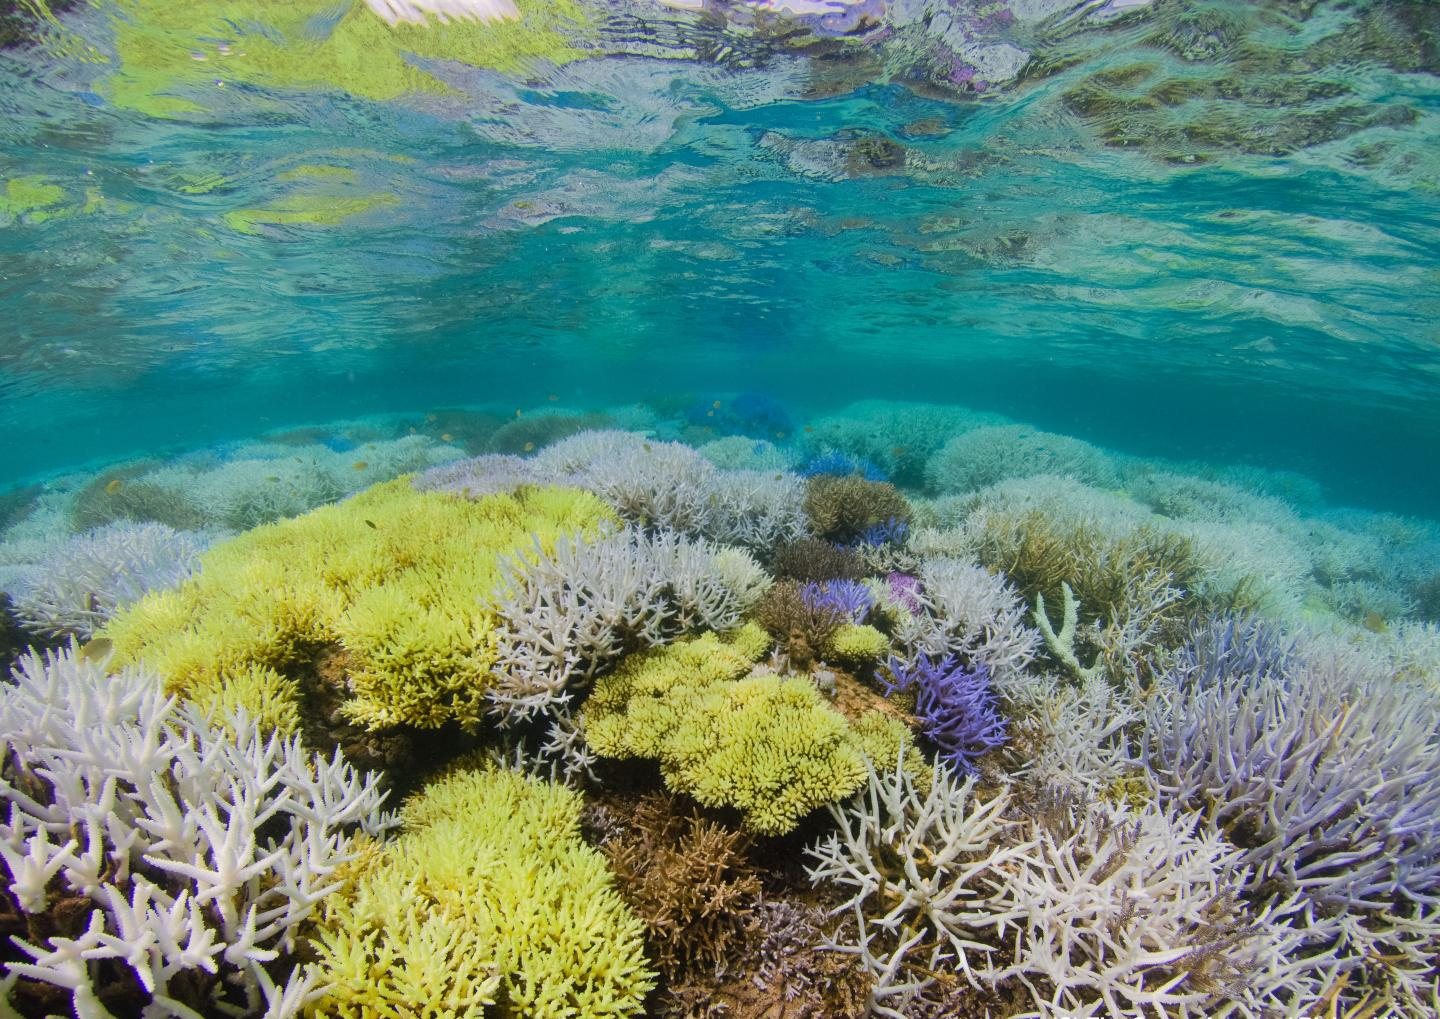 Alice May Porn Piçks mysterious glowing coral reefs are combating to get better